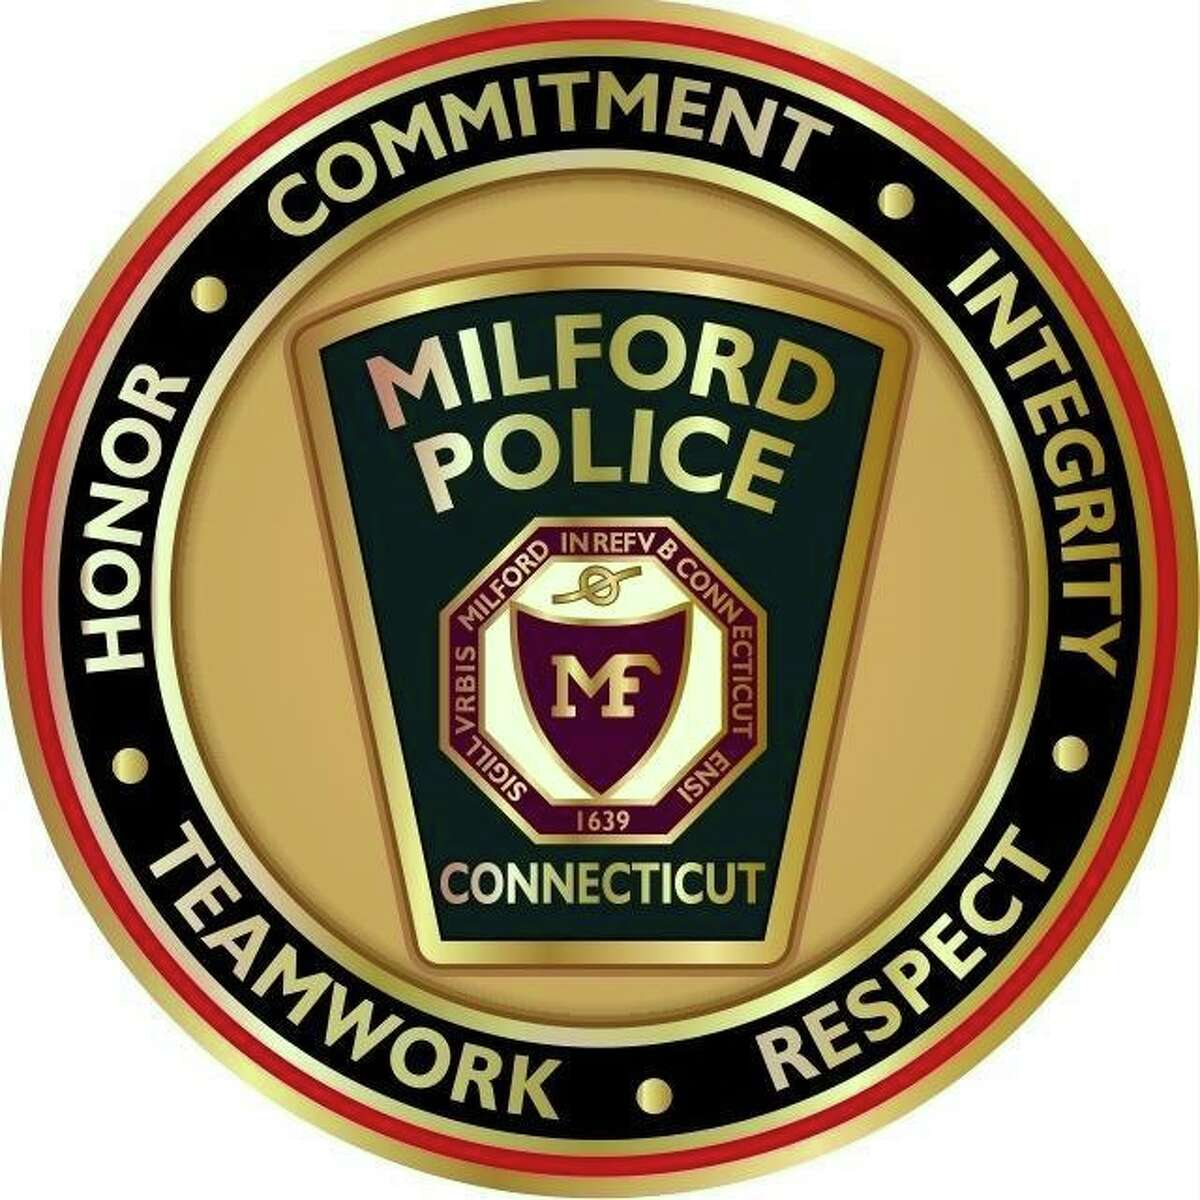 The Milford Police Department seal.